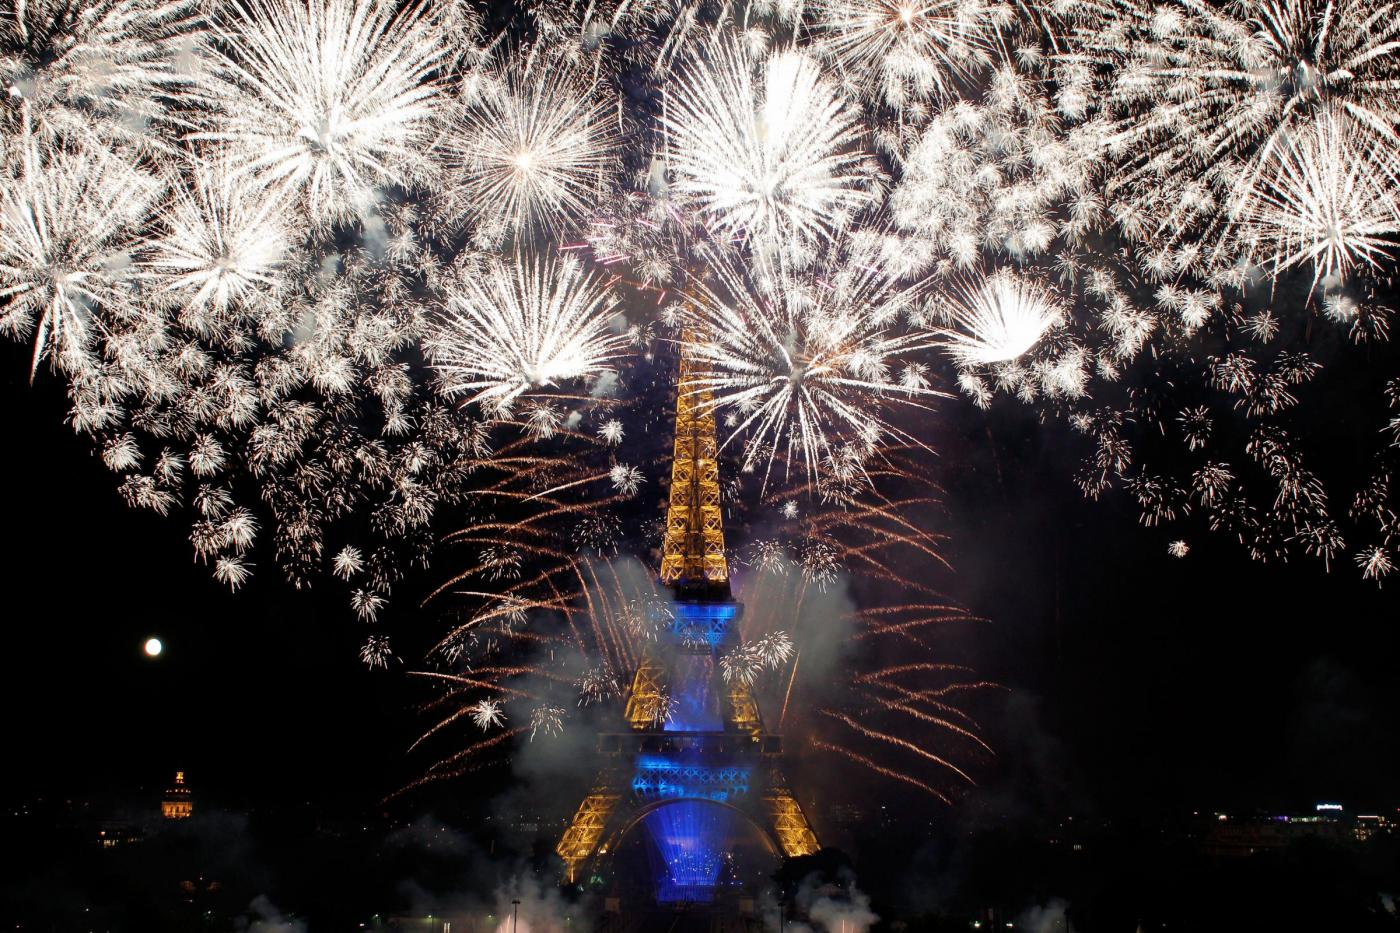 Francia fuochi artificio